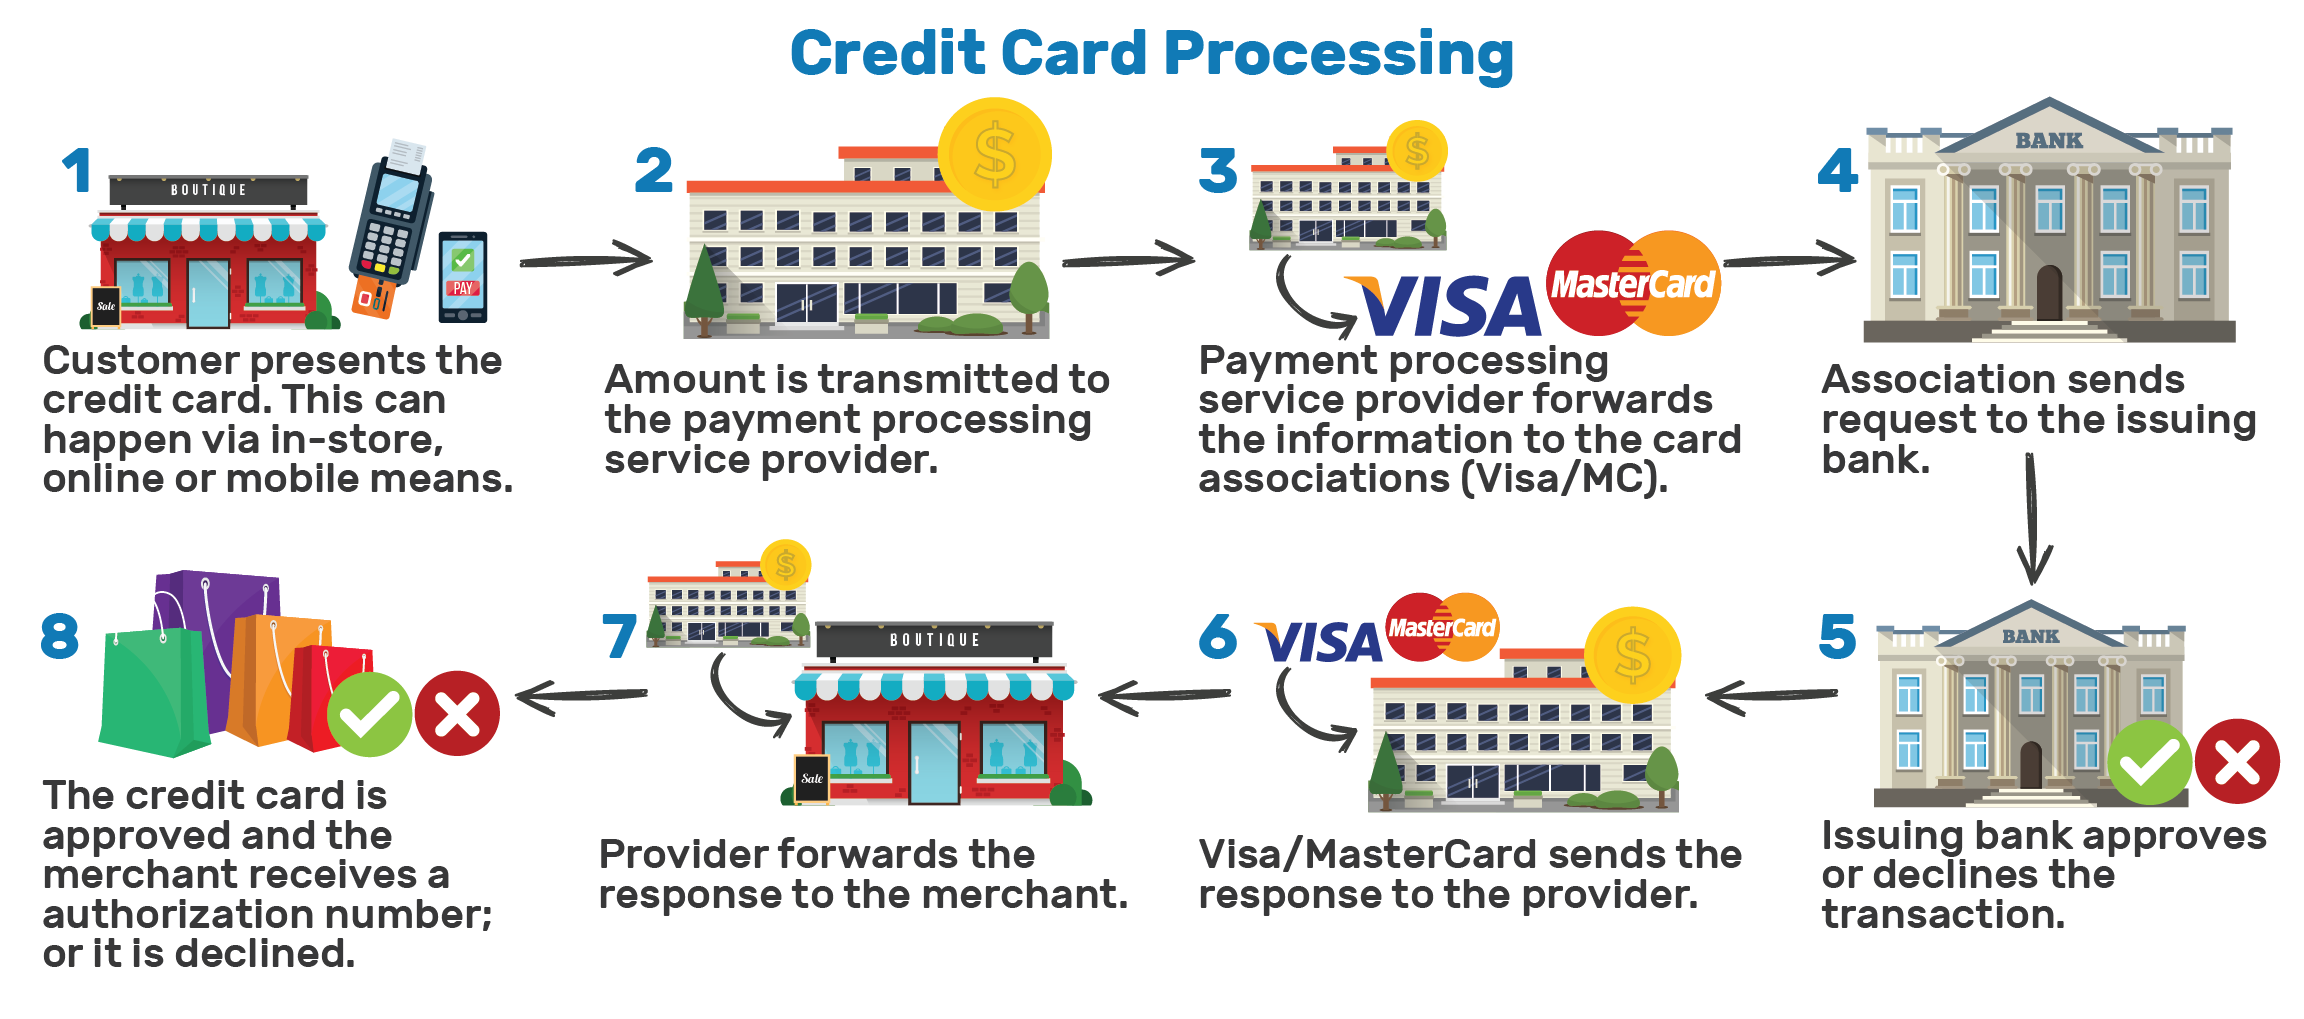 https://www.paystand.com/hs-fs/hubfs/How interchange works credit card processing.png?width=2304&name=How interchange works credit card processing.png